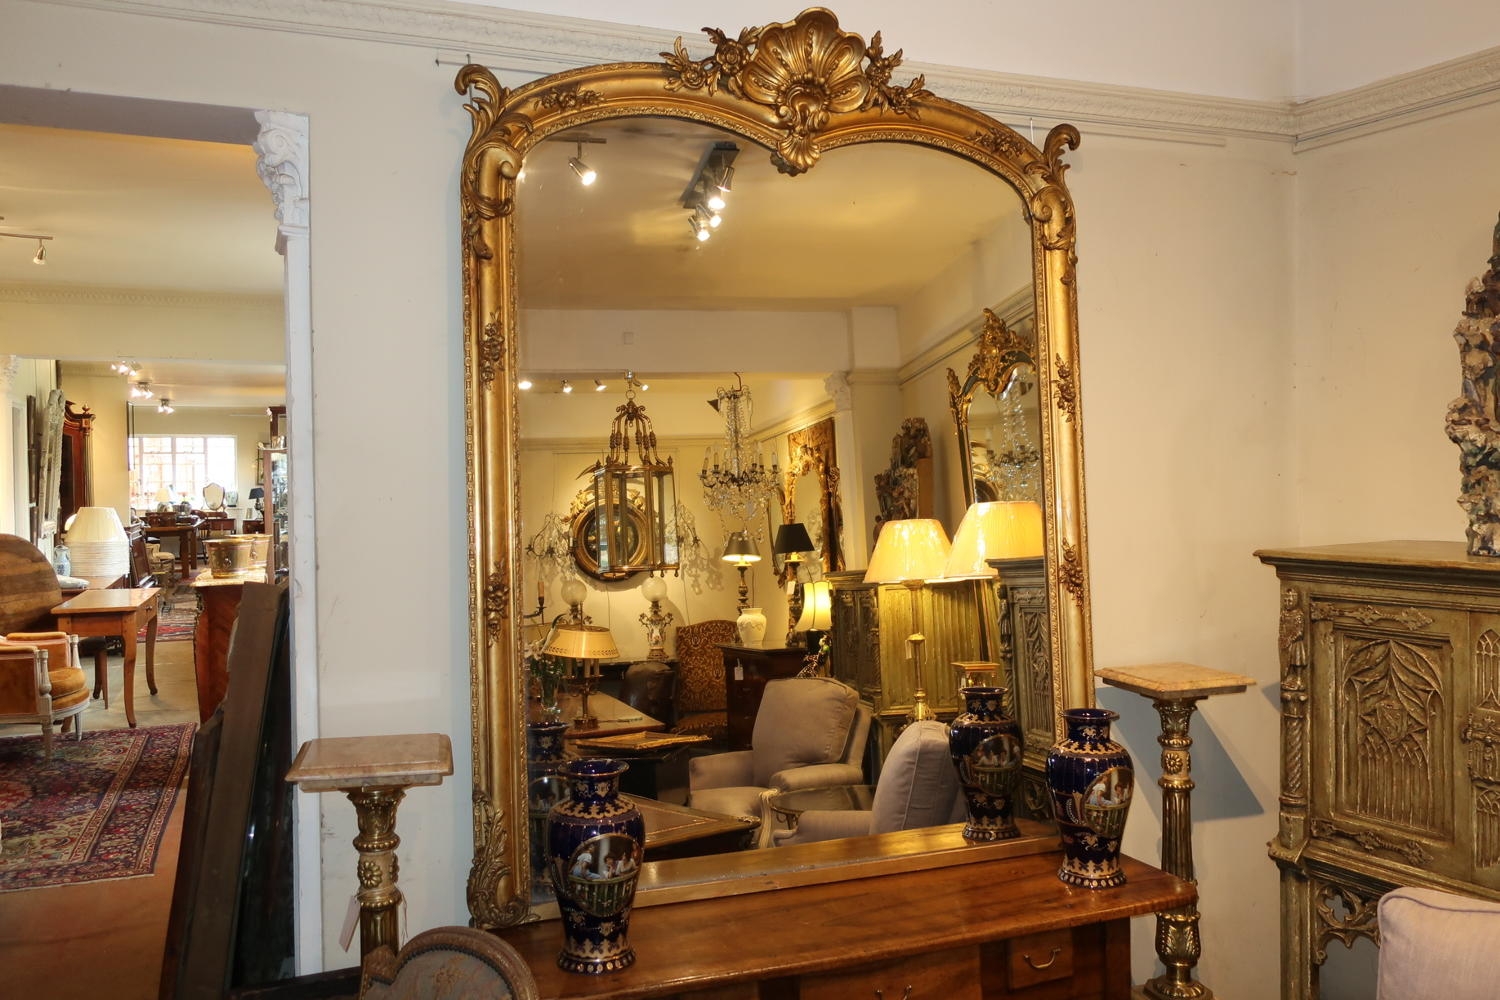 Very large gilt mirror